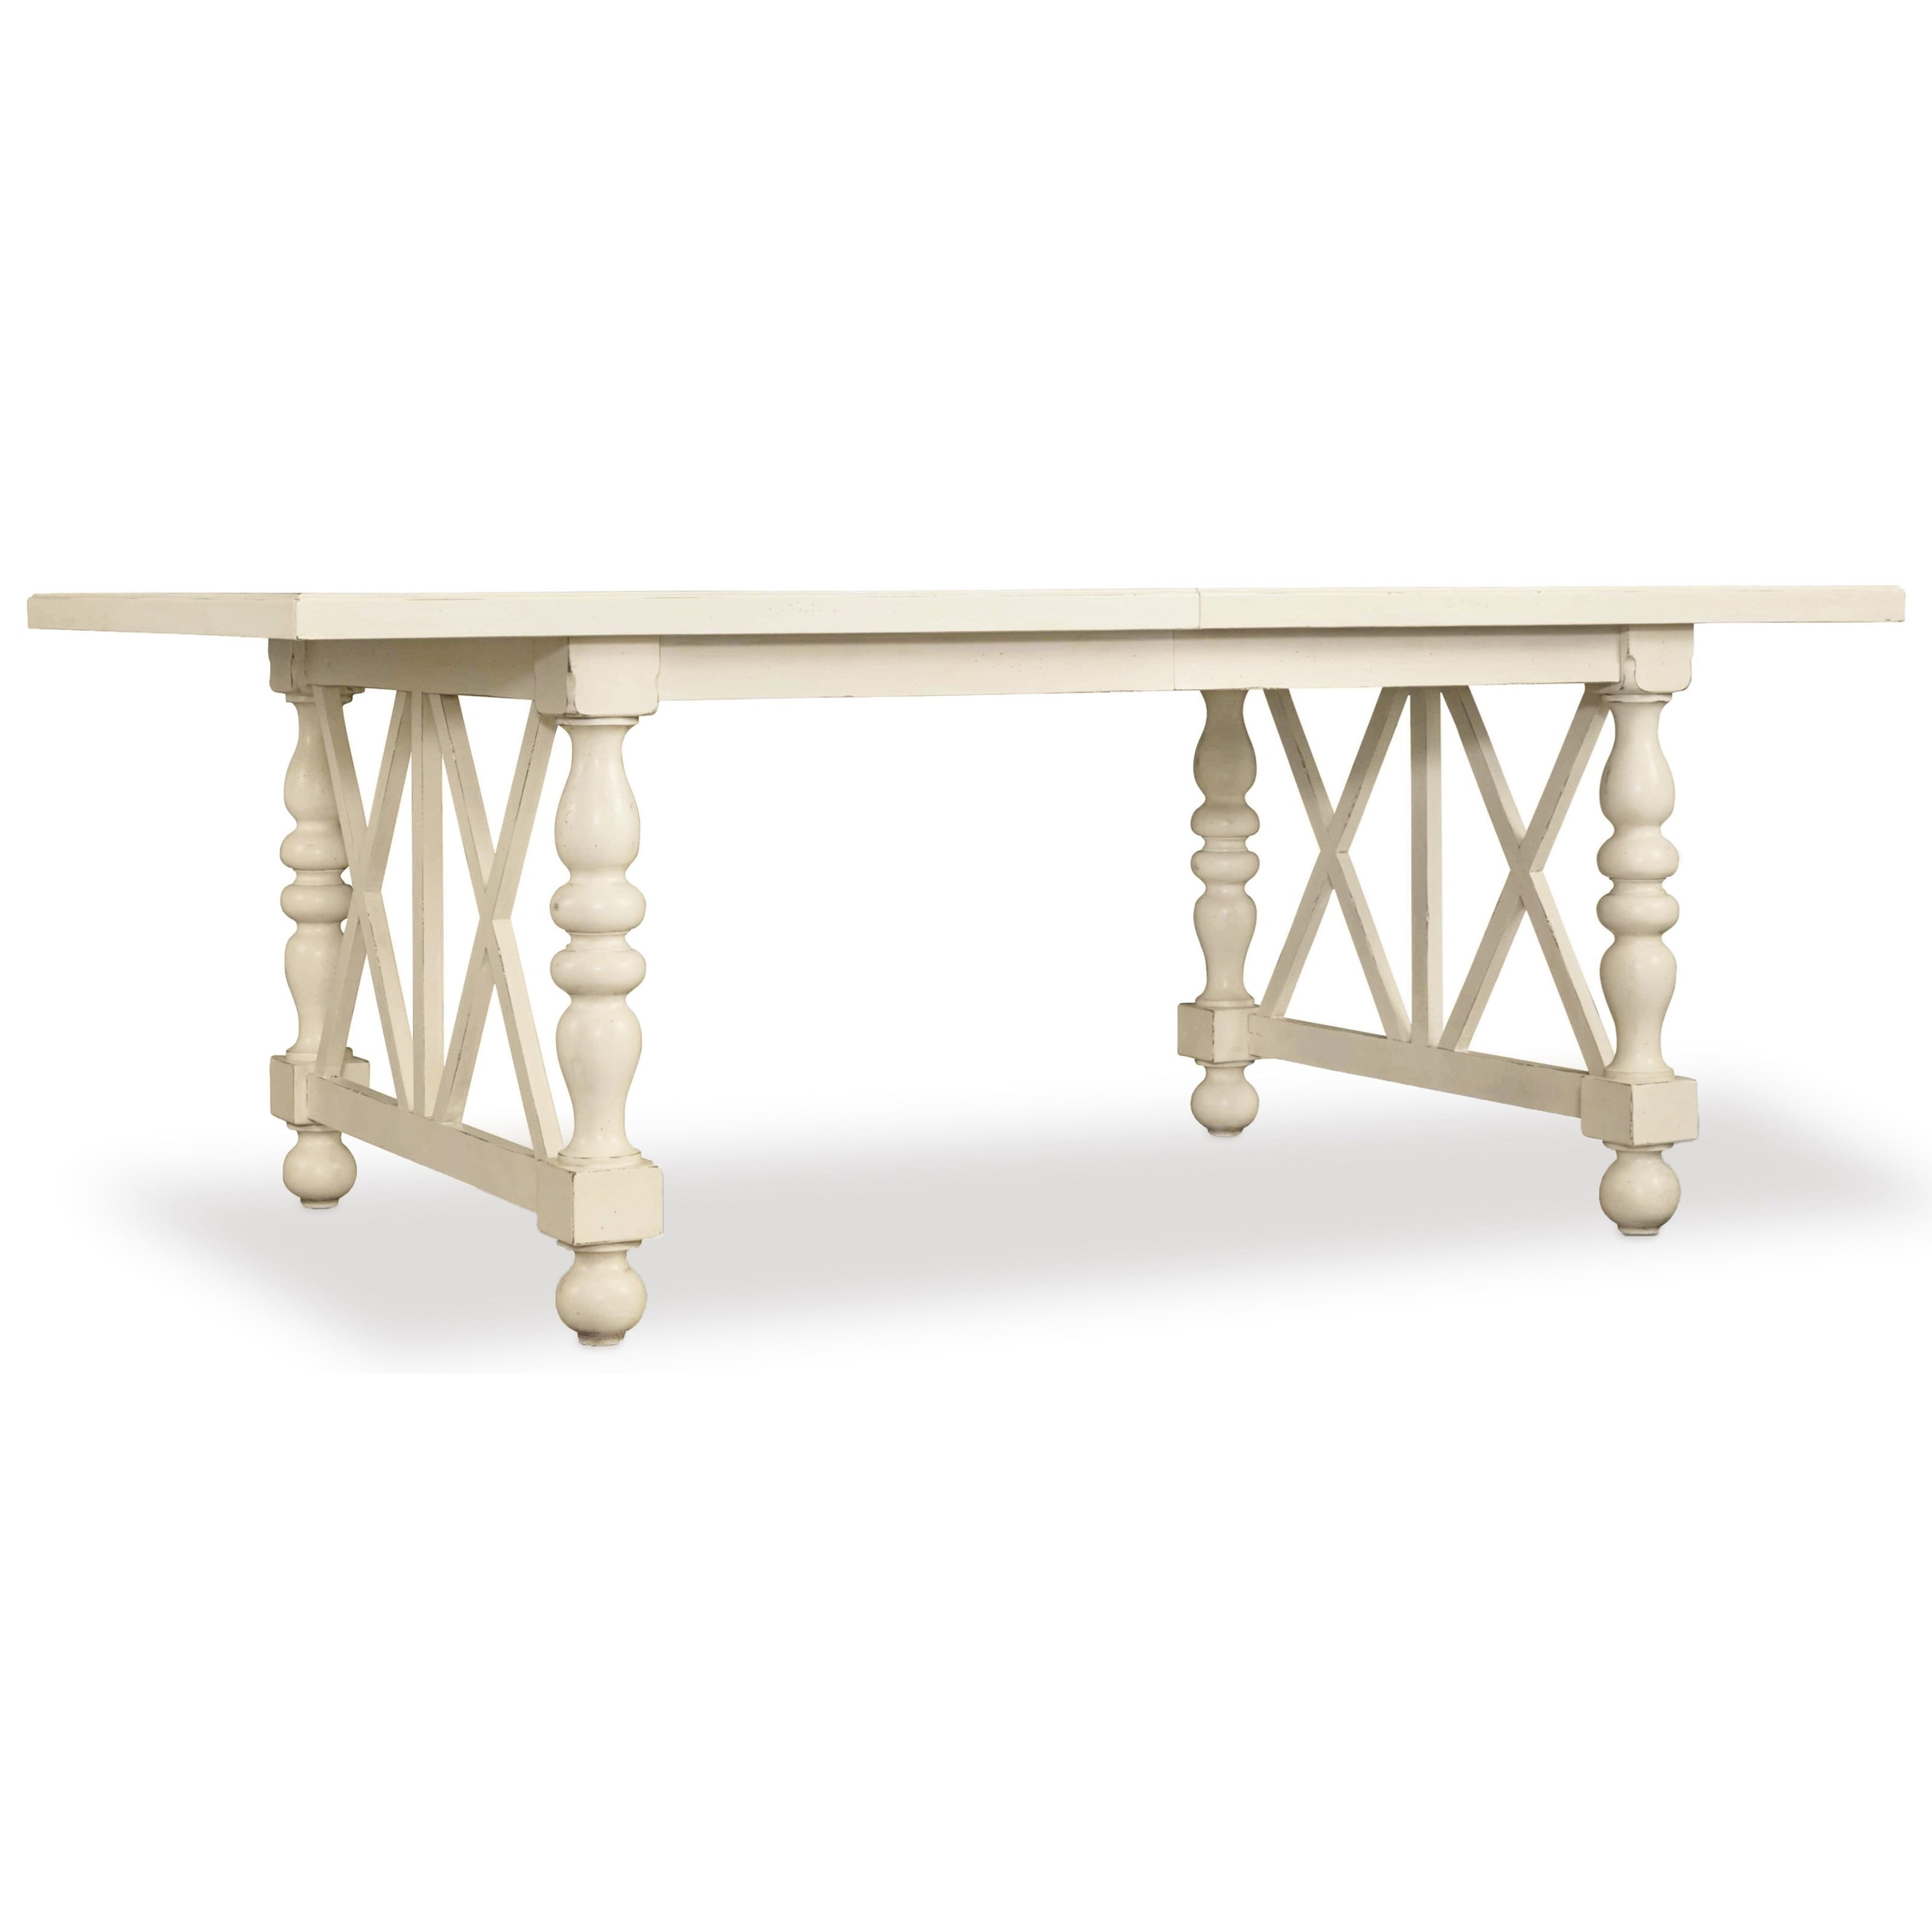 Hooker Furniture Sandcastle 80in Rectangle Dining Table - Item Number: 5900-75200-WH